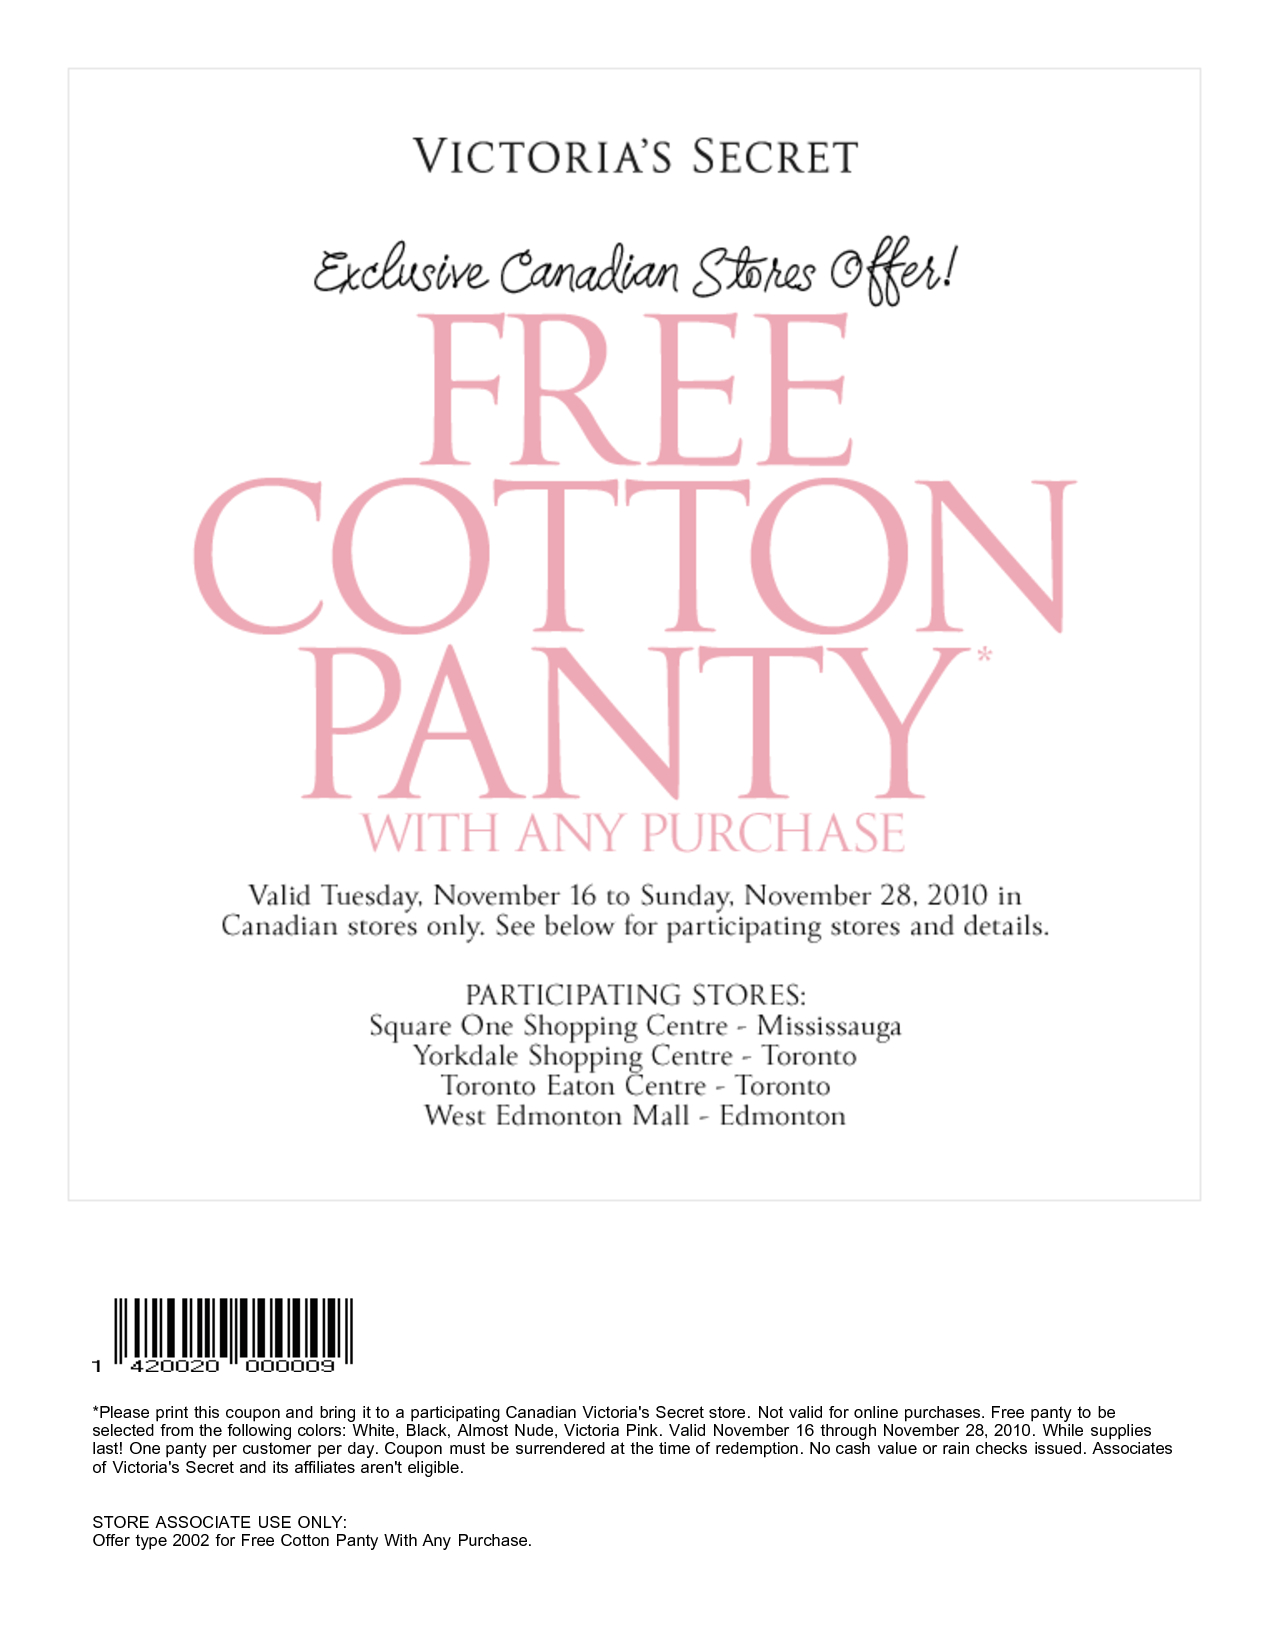 Victorias Secret Coupons Code 2017 | Printable Coupons Online - Free Printable Coupons 2017